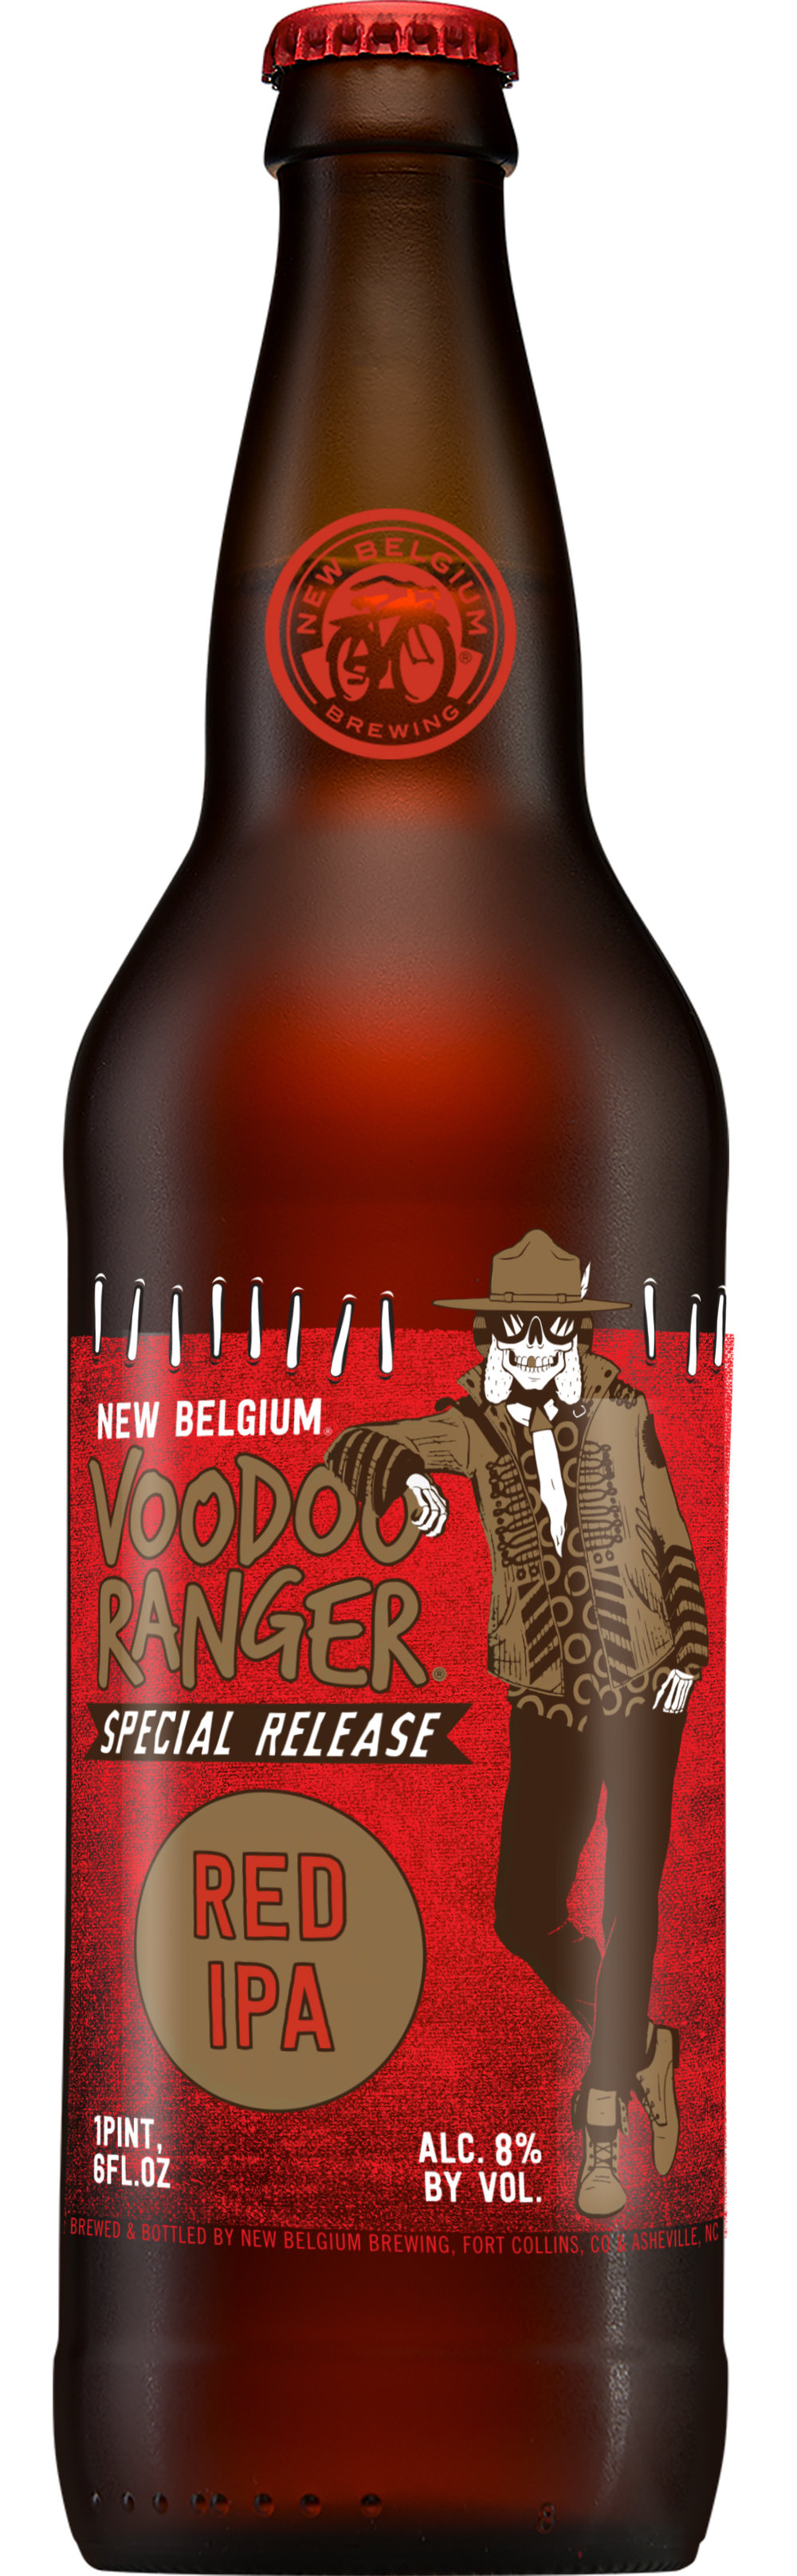 image courtesy New Belgium Brewing Company